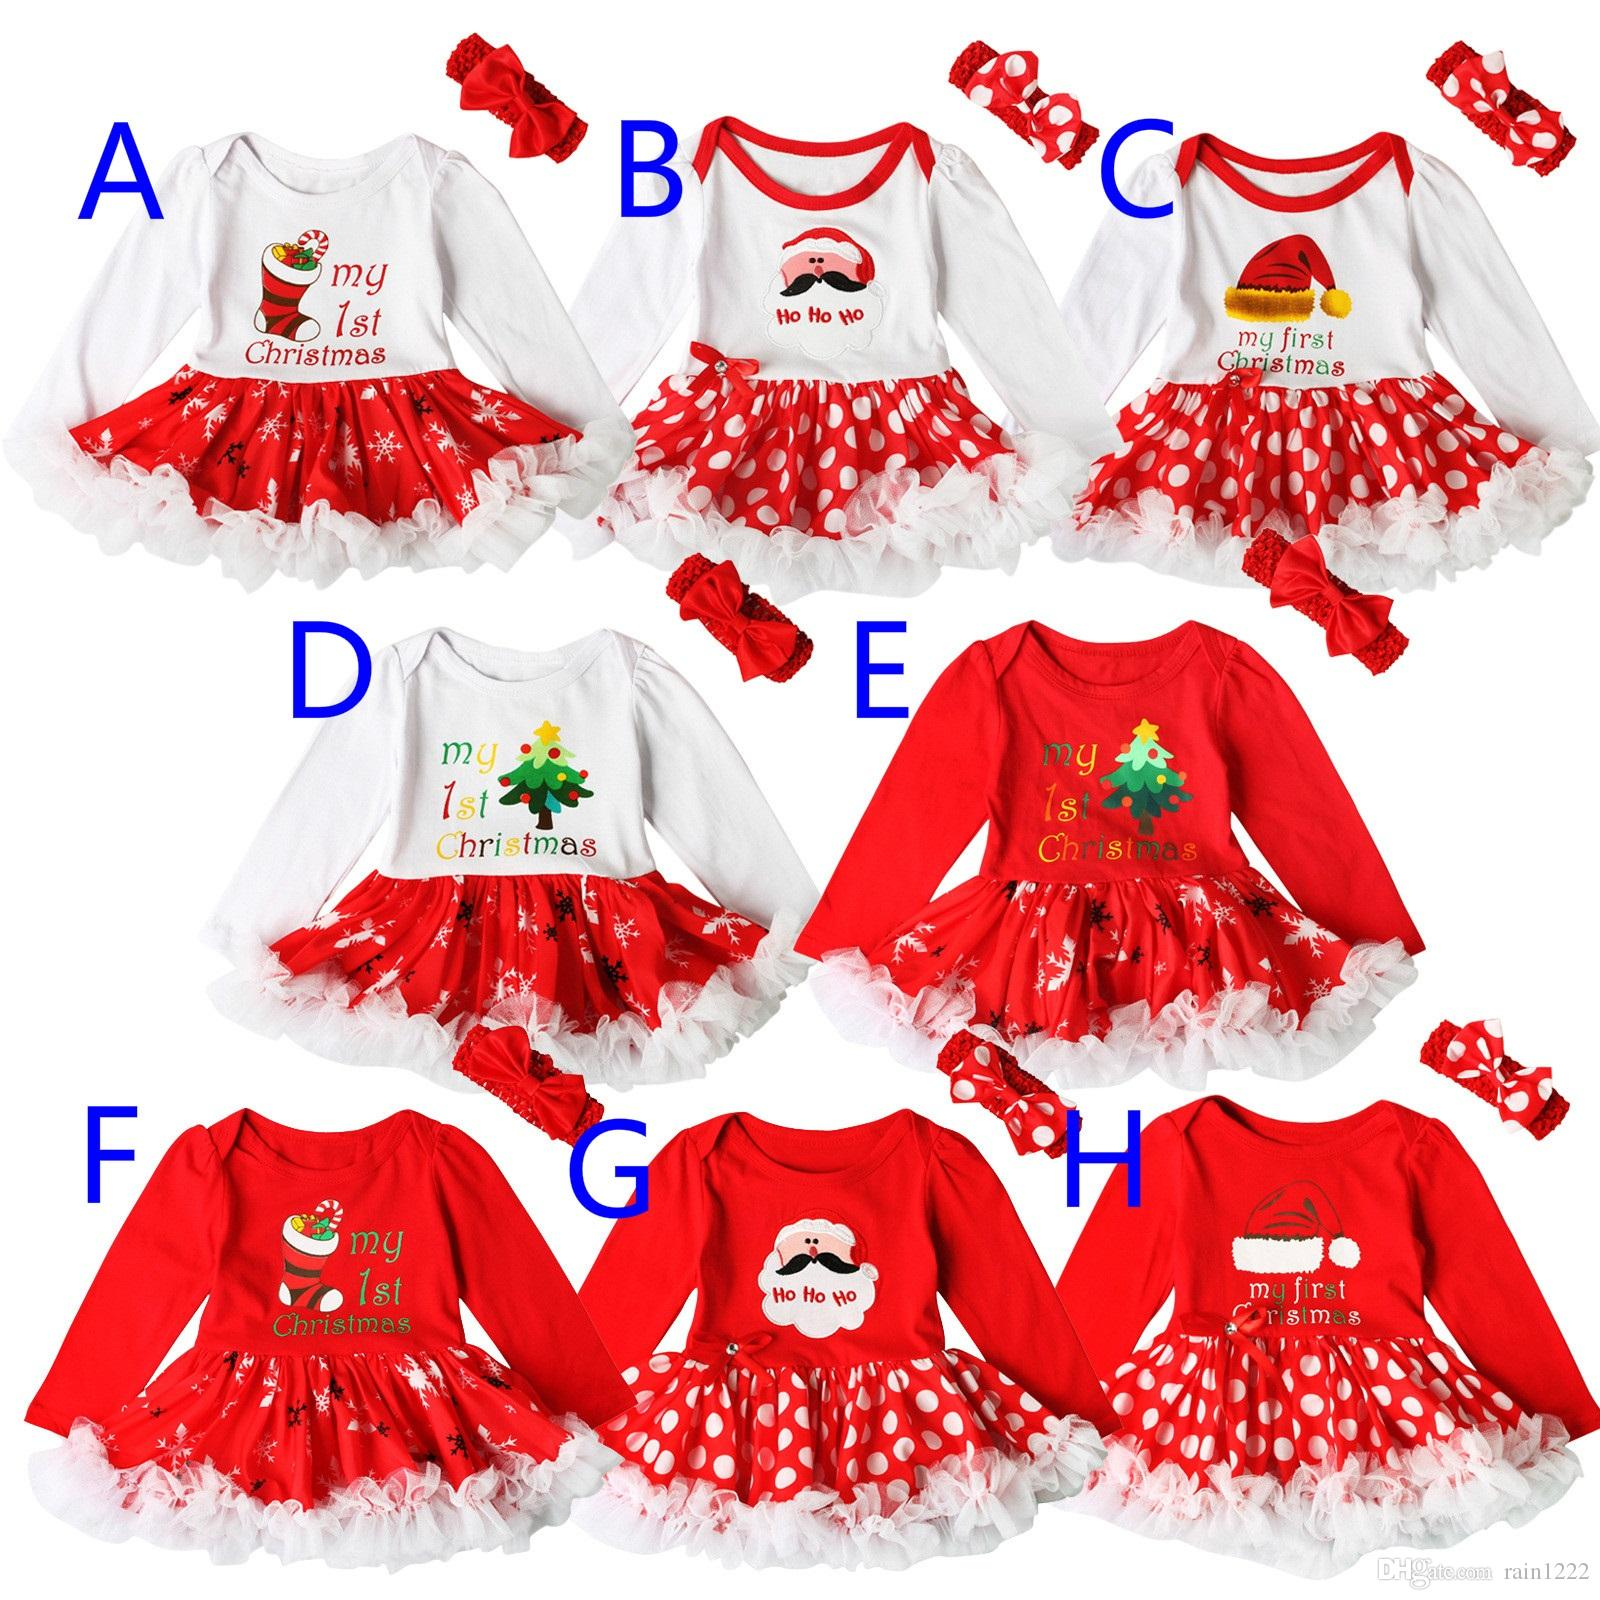 5bd2b816d 2019 New Baby Kids Christmas Clothes Rompers For Babies Girls Xmas ...